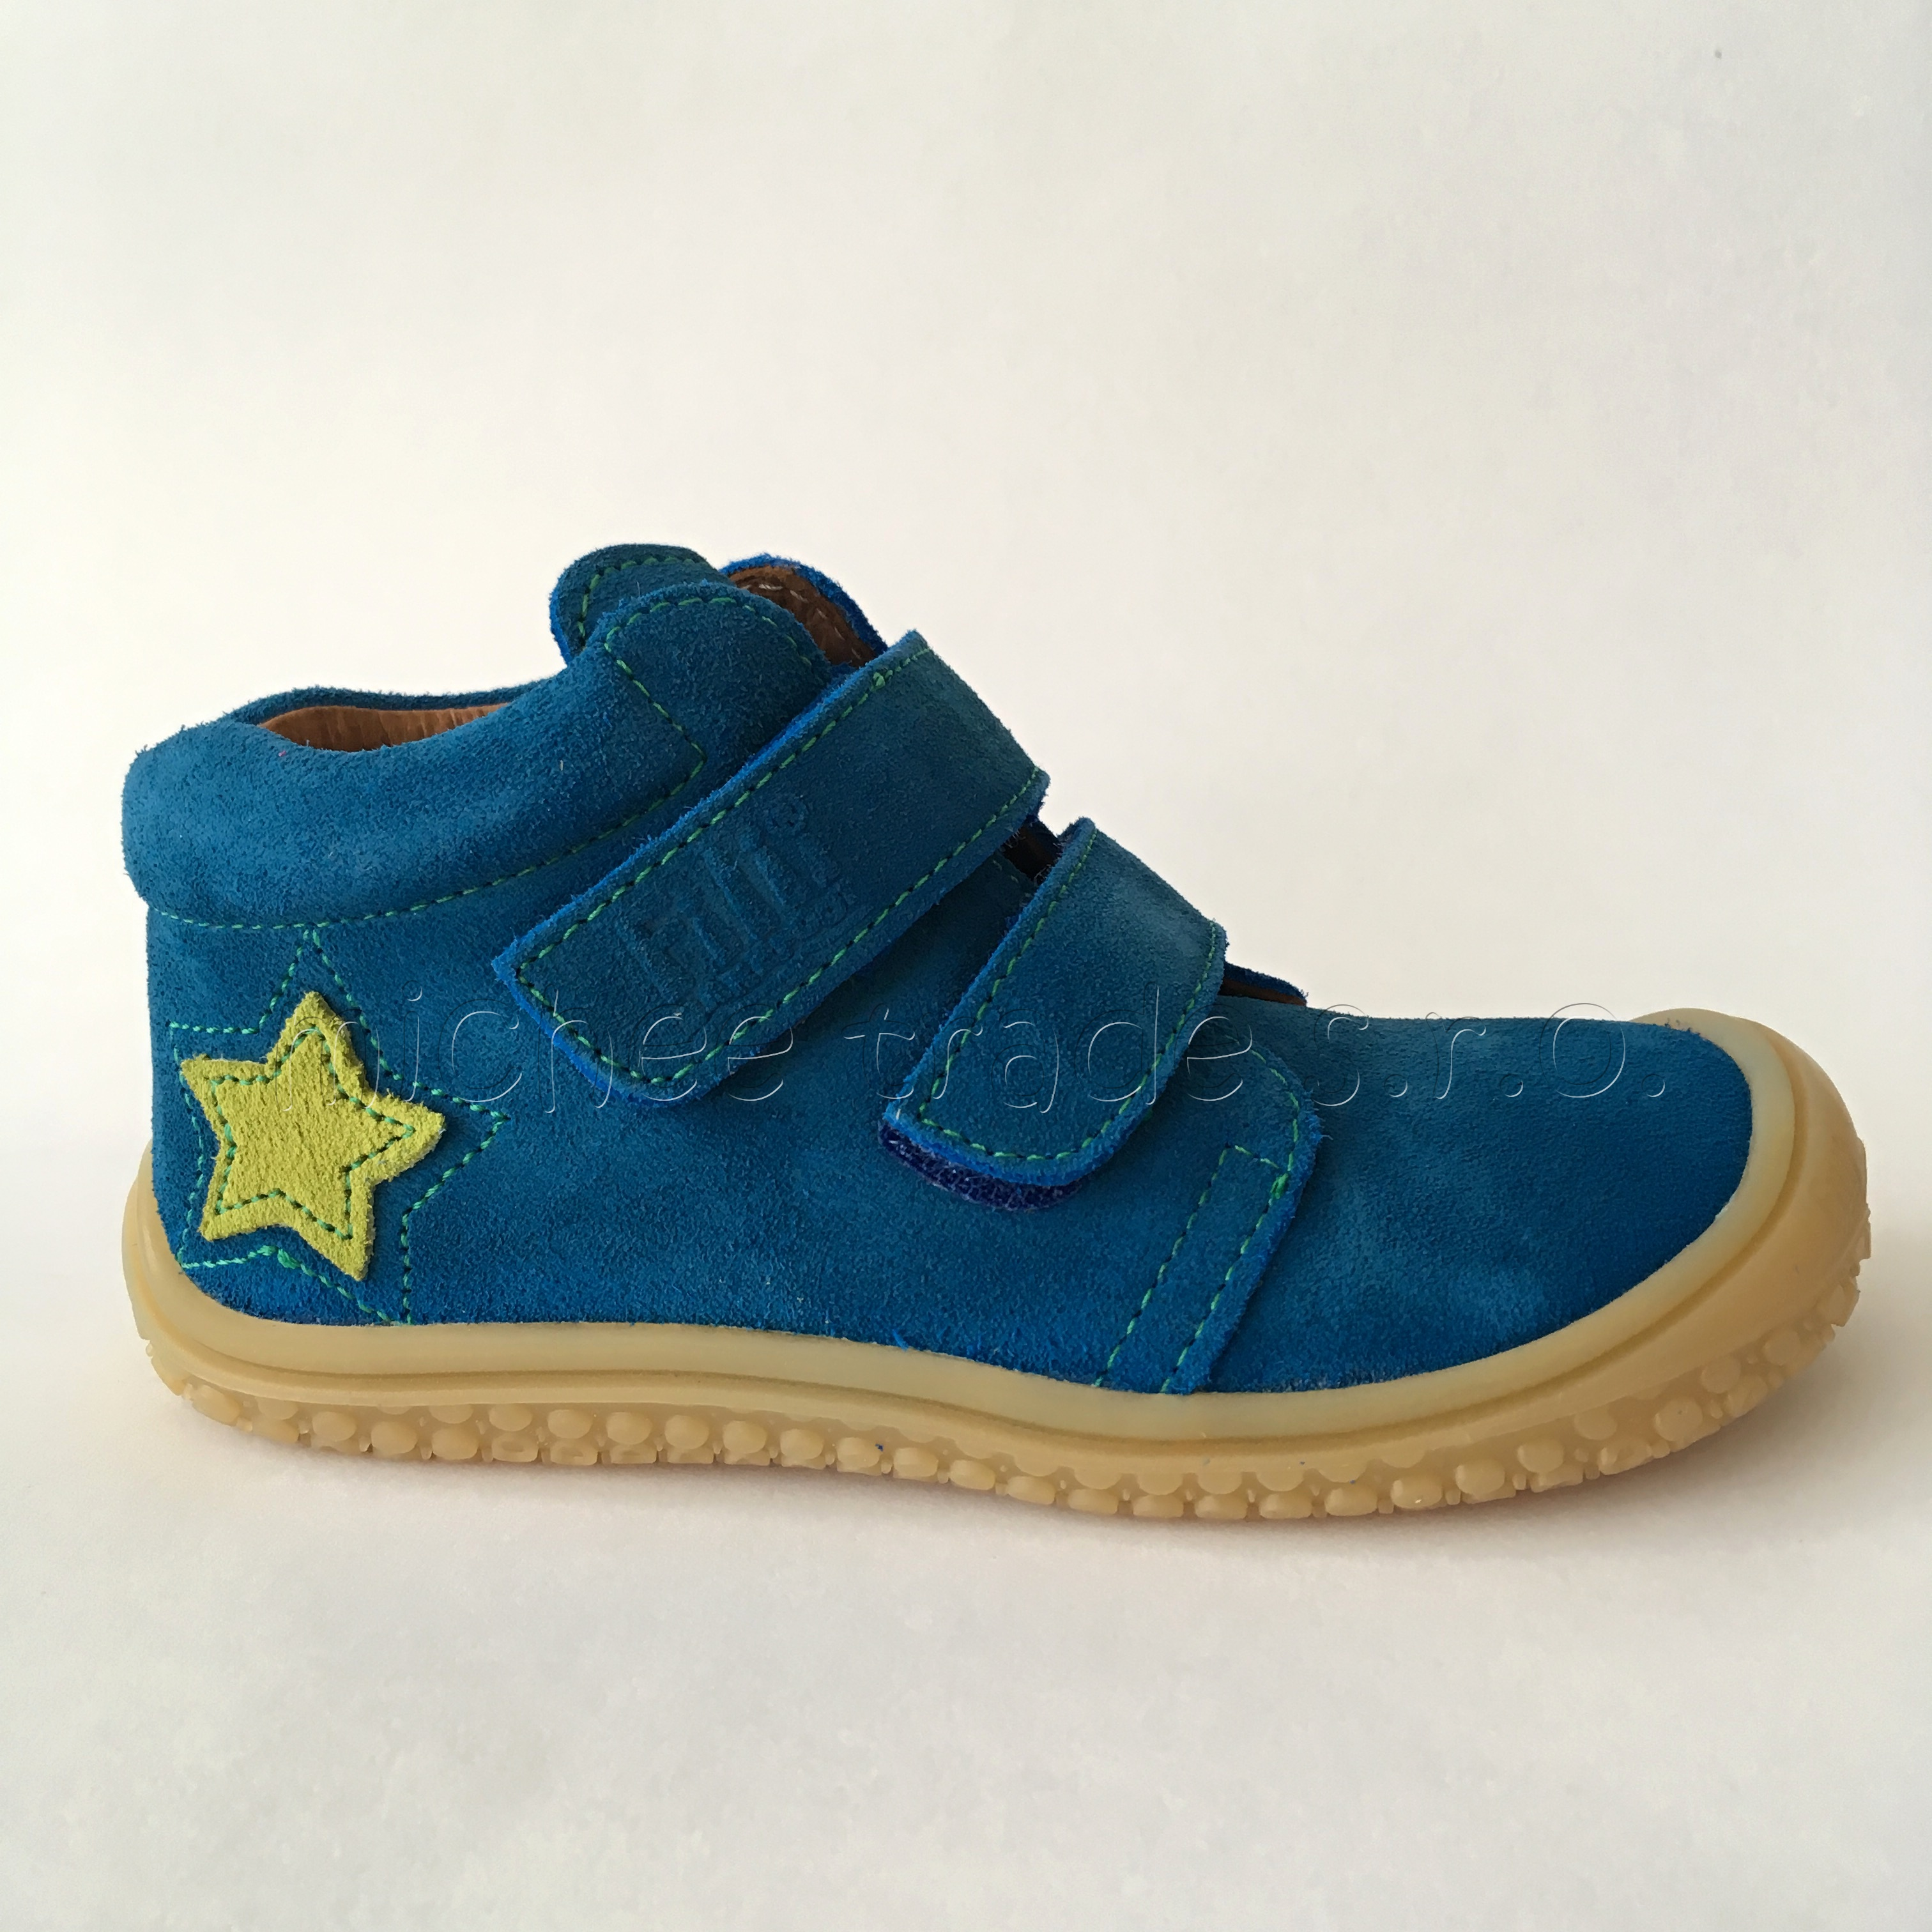 Filii Klett royalblue/star/Velours